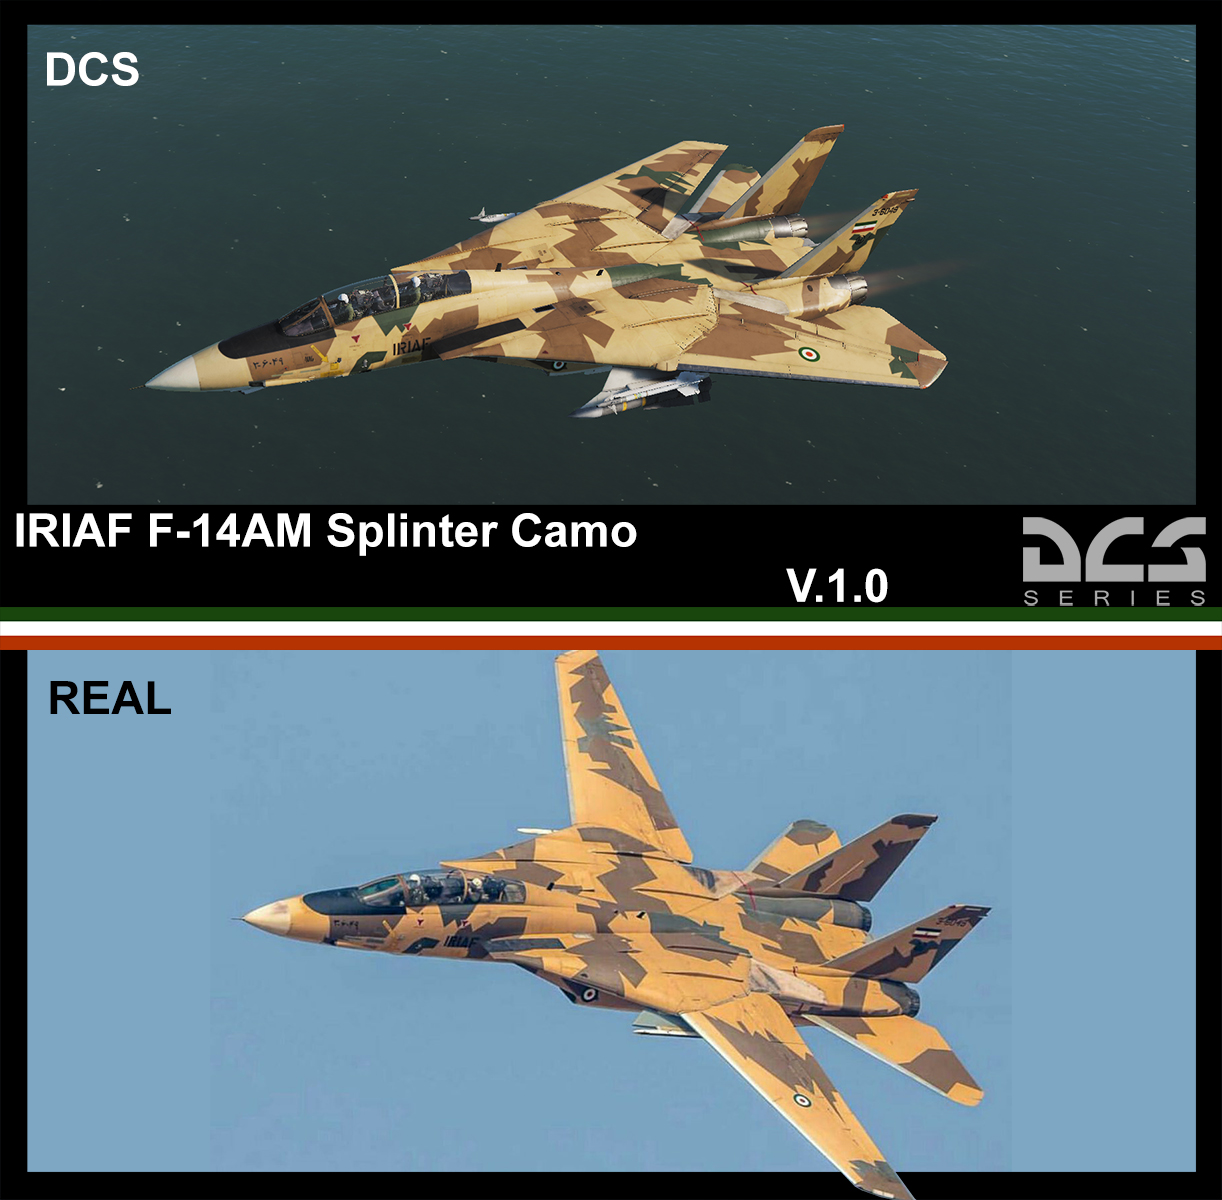 F-14B(AM) Splinter Camo IRIAF [3-6049]  v.1.0 [1/14/2020]